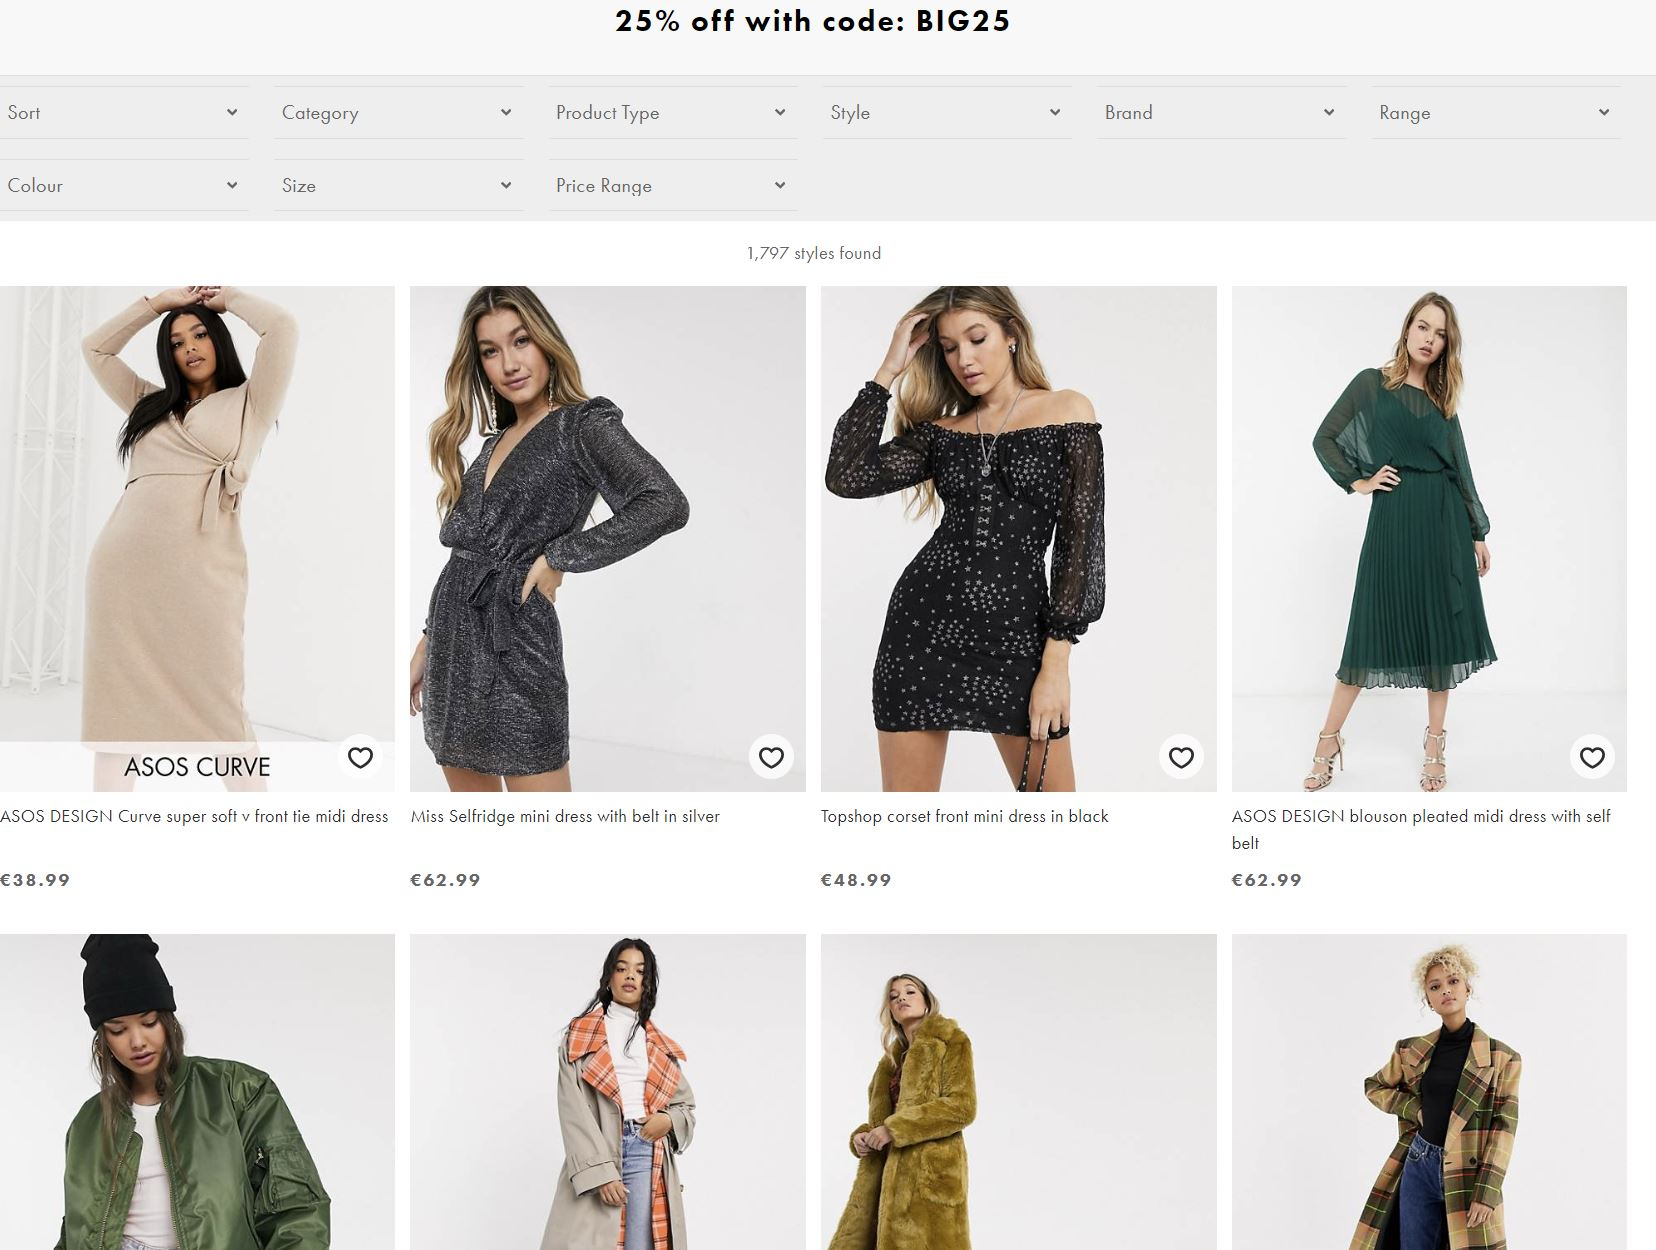 asos-25-off-everything-coupon-code-asos-black-friday-2019